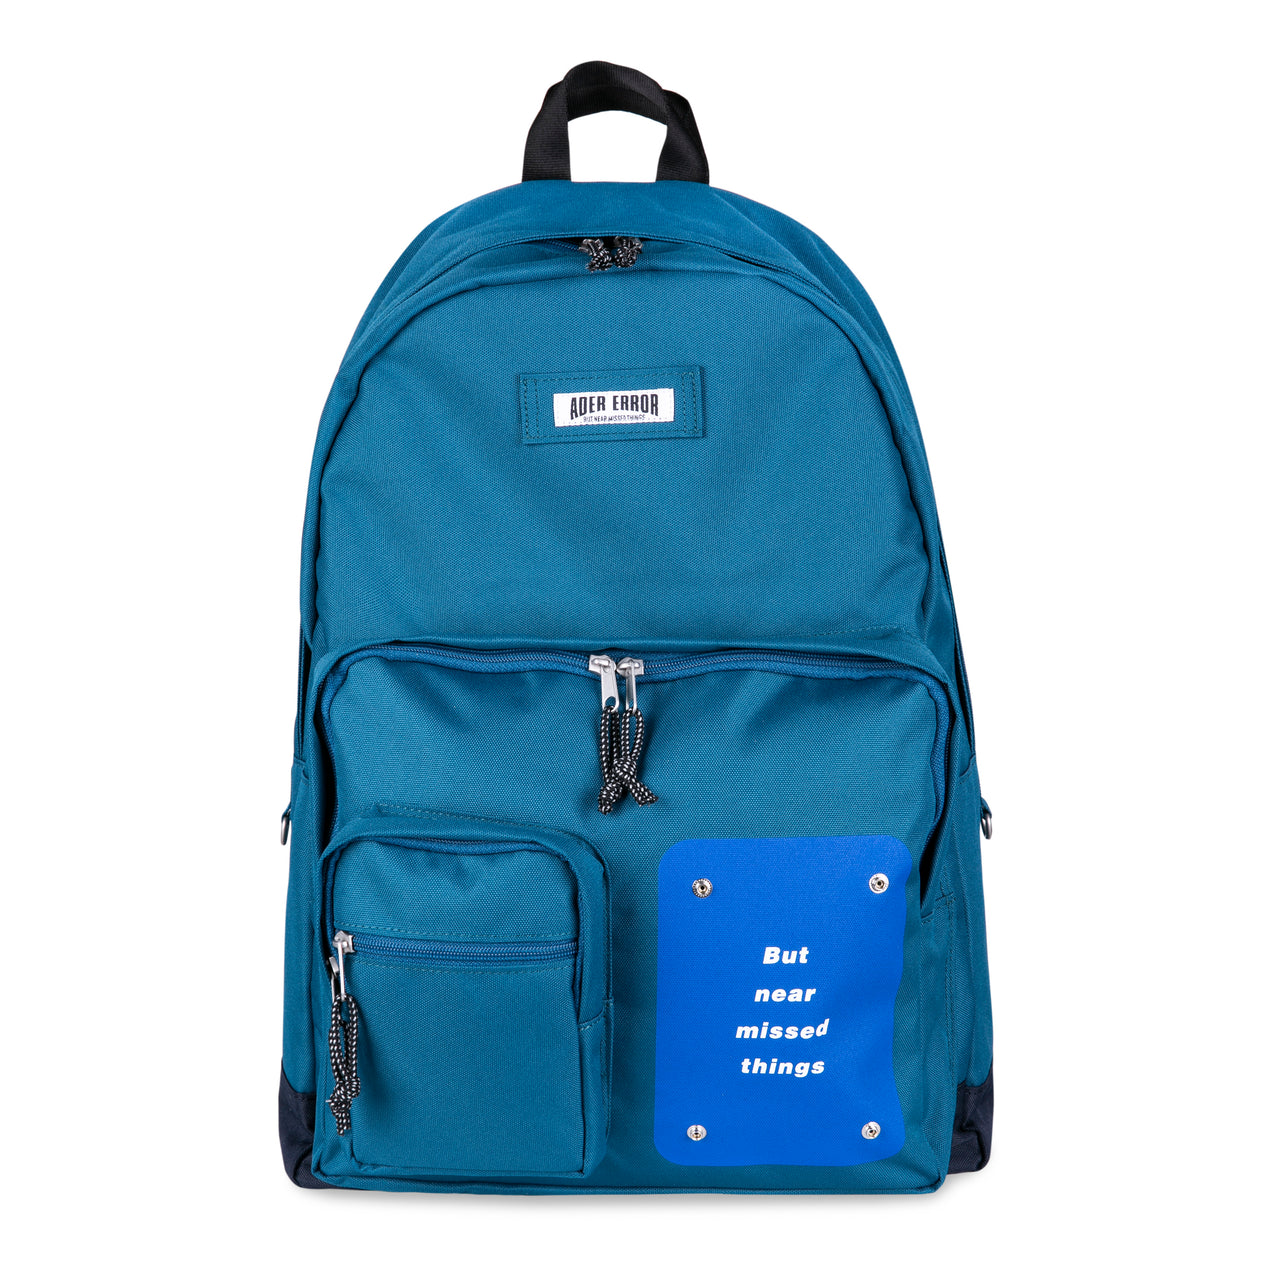 Adererror Pouch Backpack - Turquoise Blue